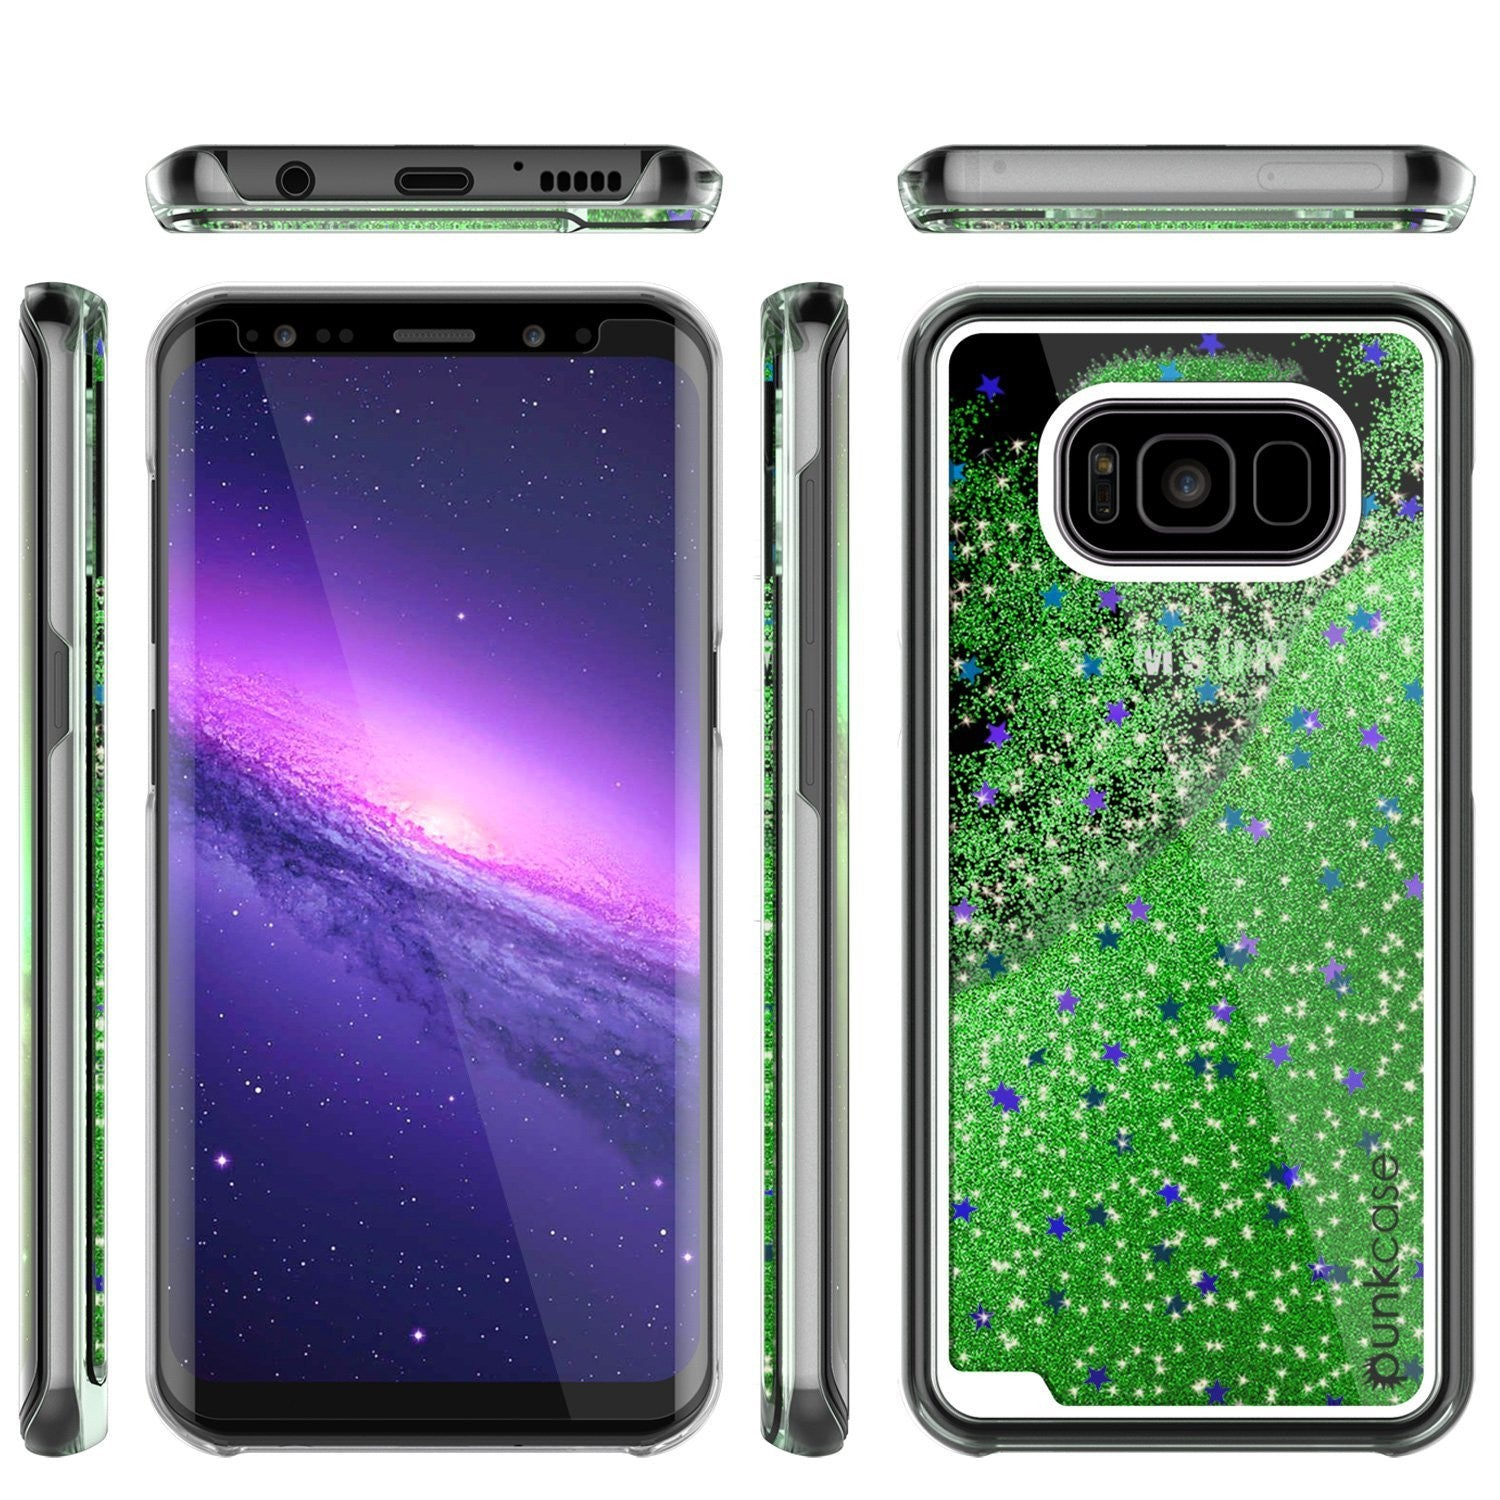 Galaxy S8 Case, Punkcase Liquid Green Series Protective Dual Layer Floating Glitter Cover